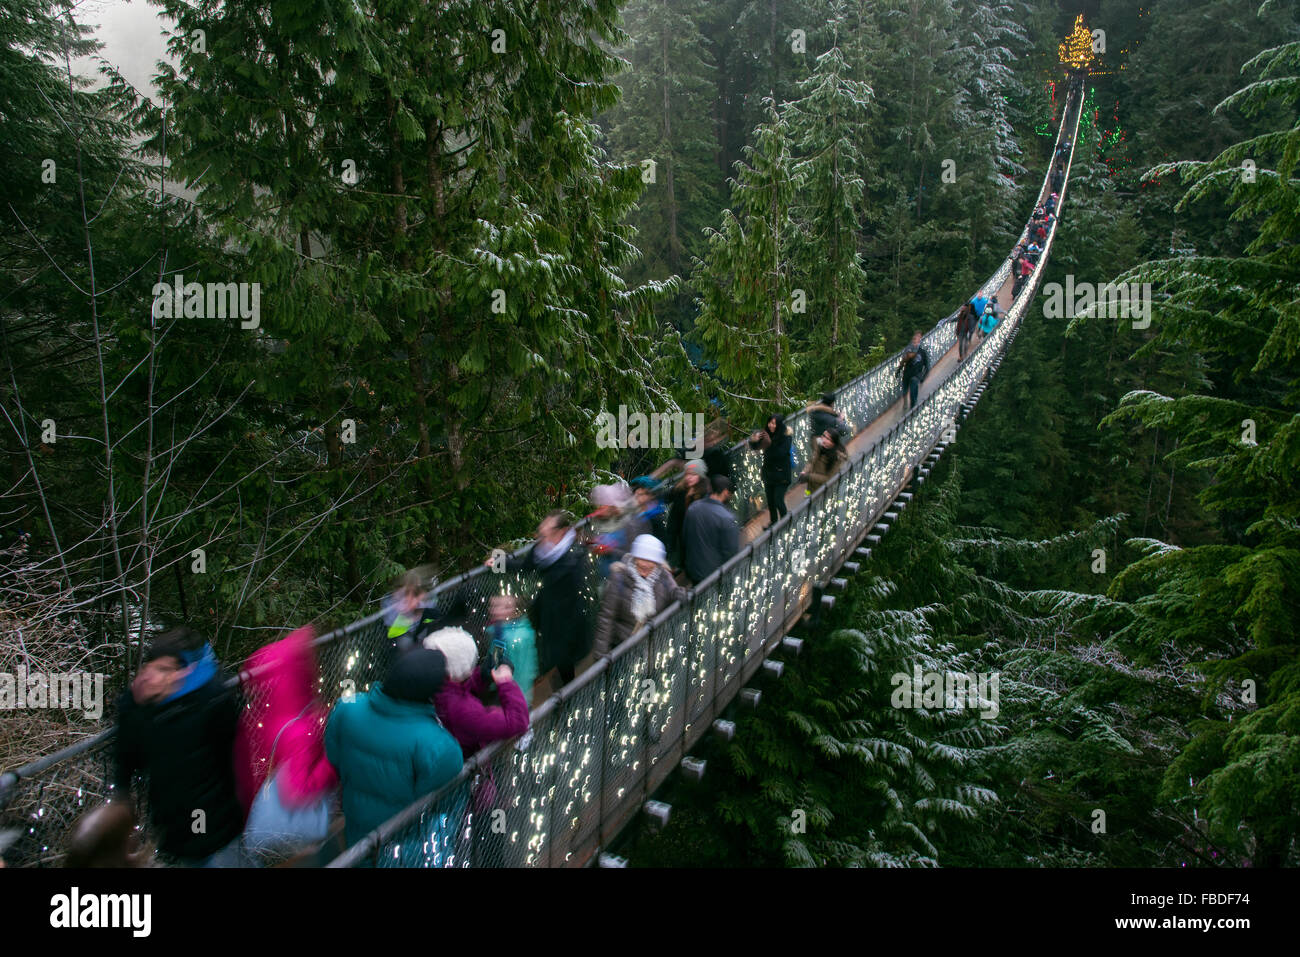 Capilano Suspension Bridge, Vancouver, British Columbia, Canada Banque D'Images